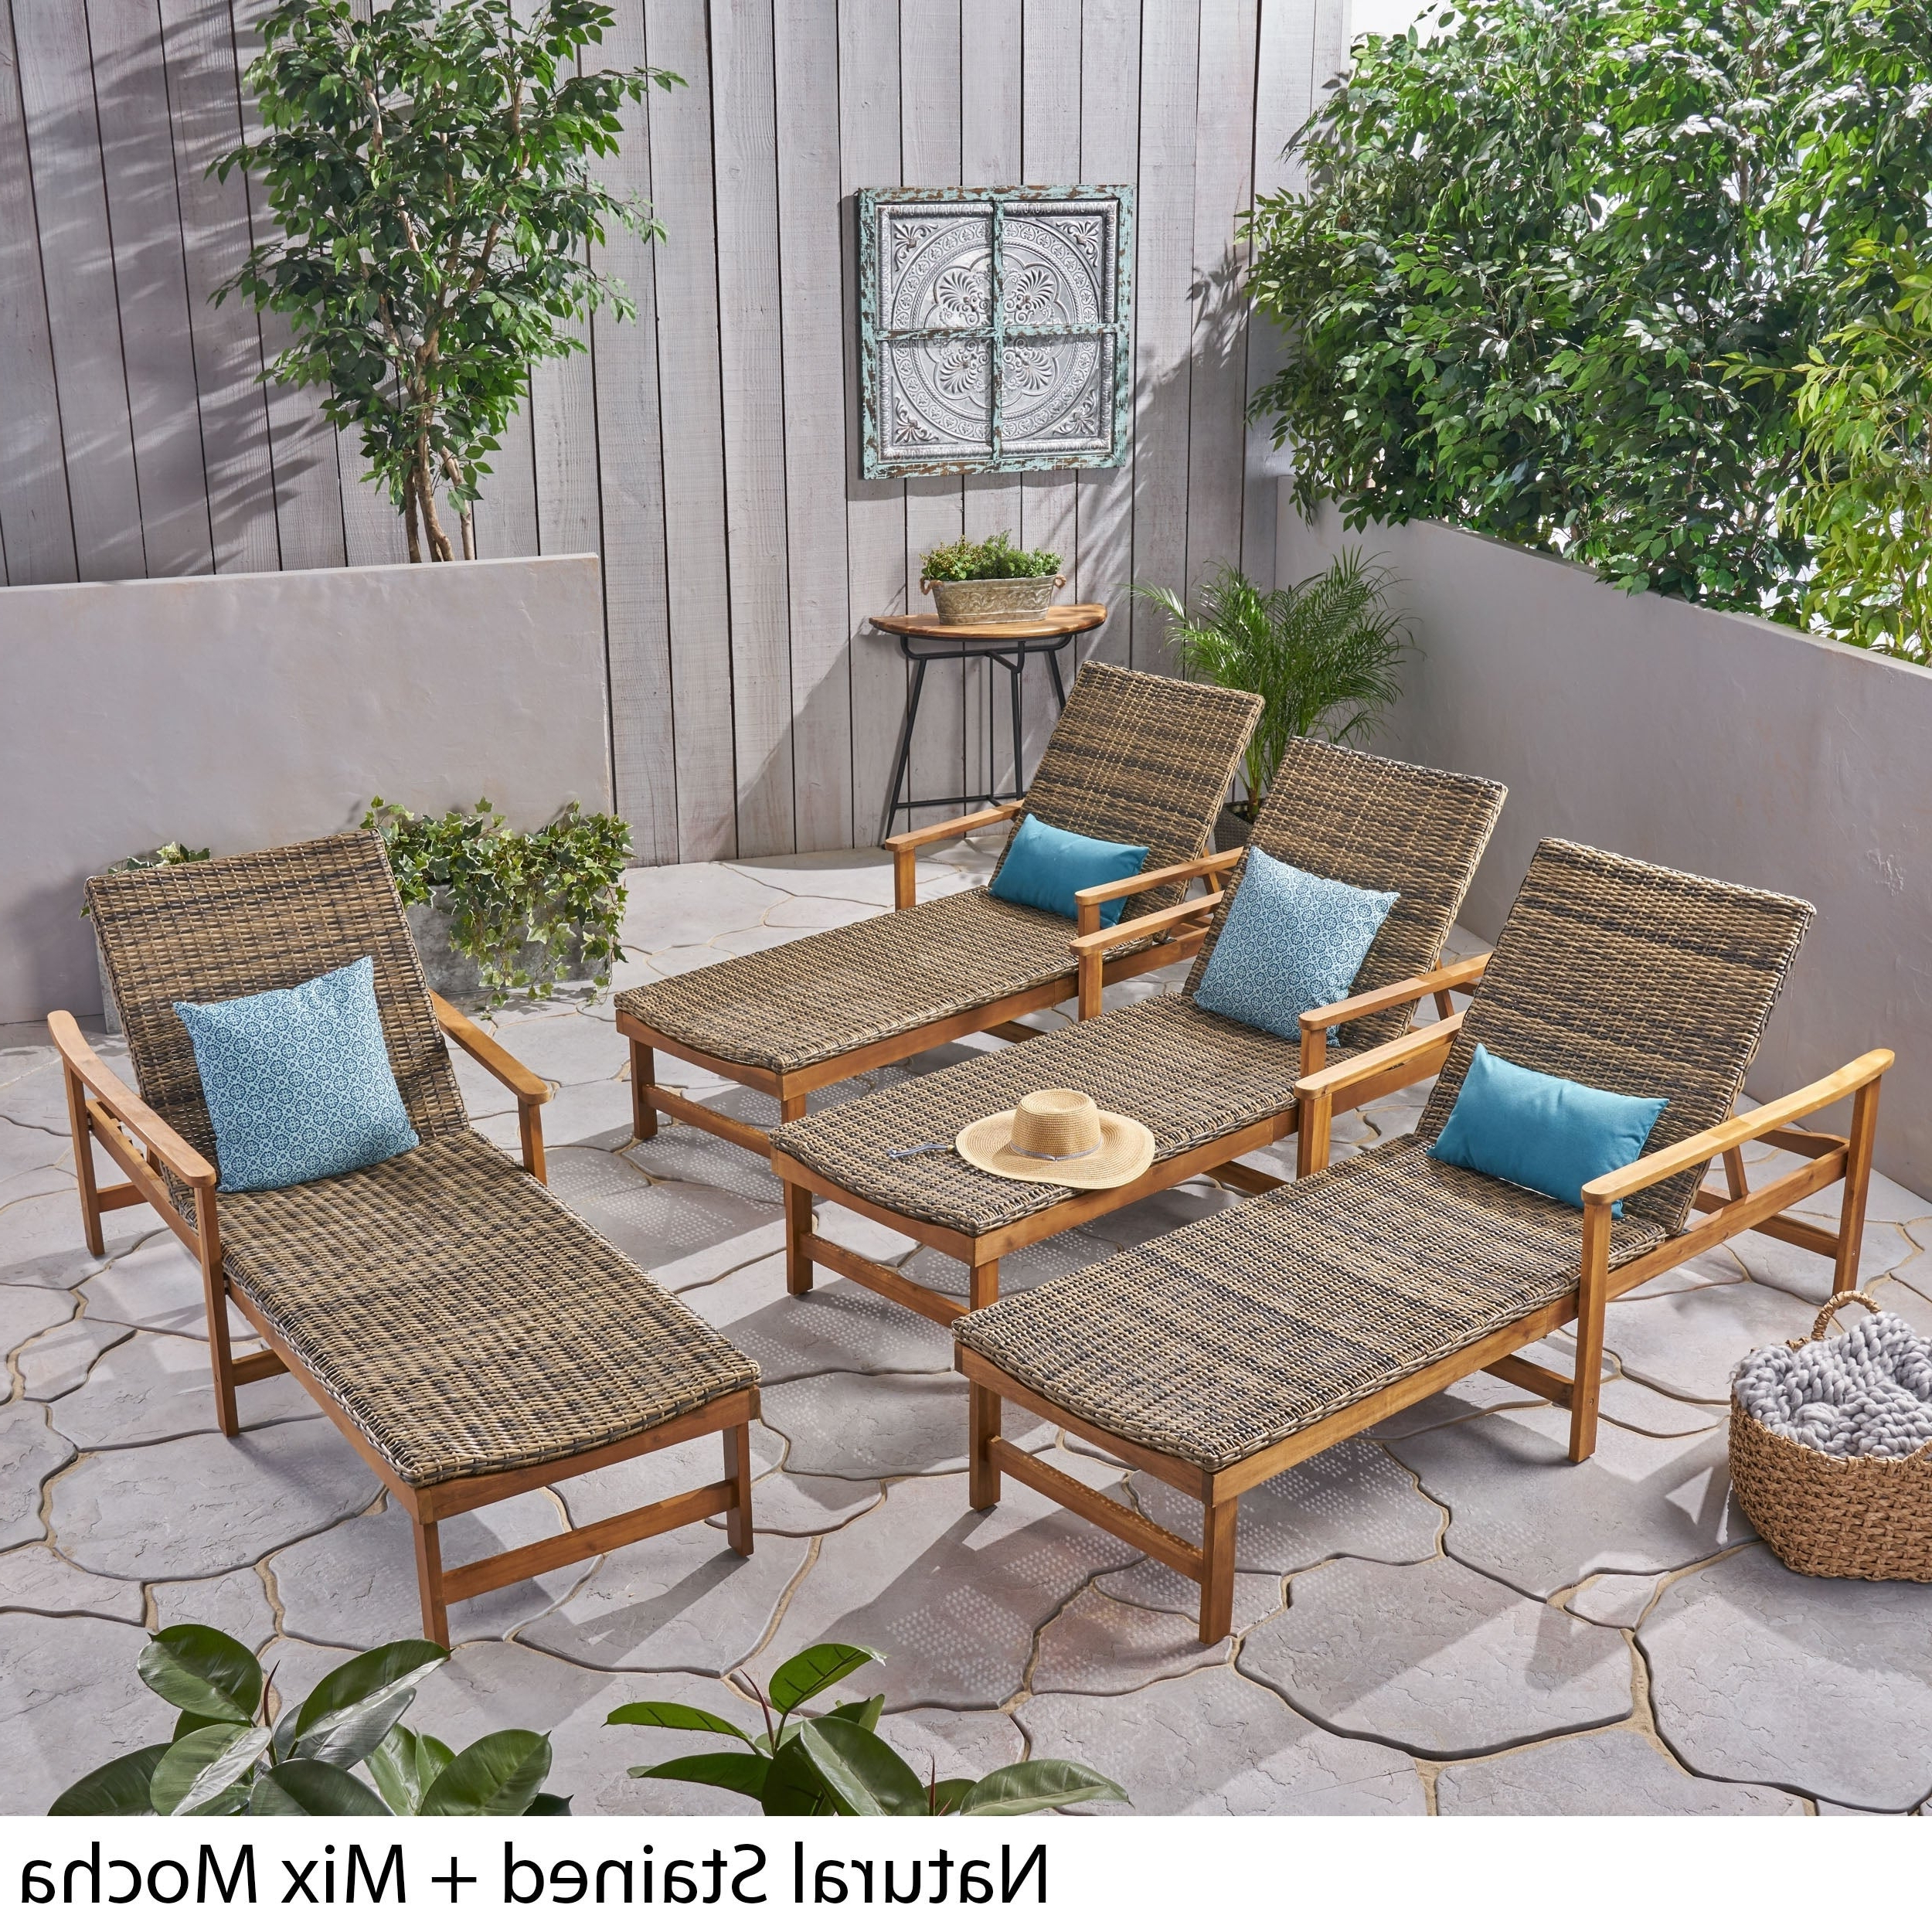 Most Recently Released Hampton Outdoor Acacia Wood And Wicker Chaise Lounges(Set Of 4) Christopher Knight Home For Outdoor Rustic Acacia Wood Chaise Lounges With Wicker Seats (View 13 of 25)